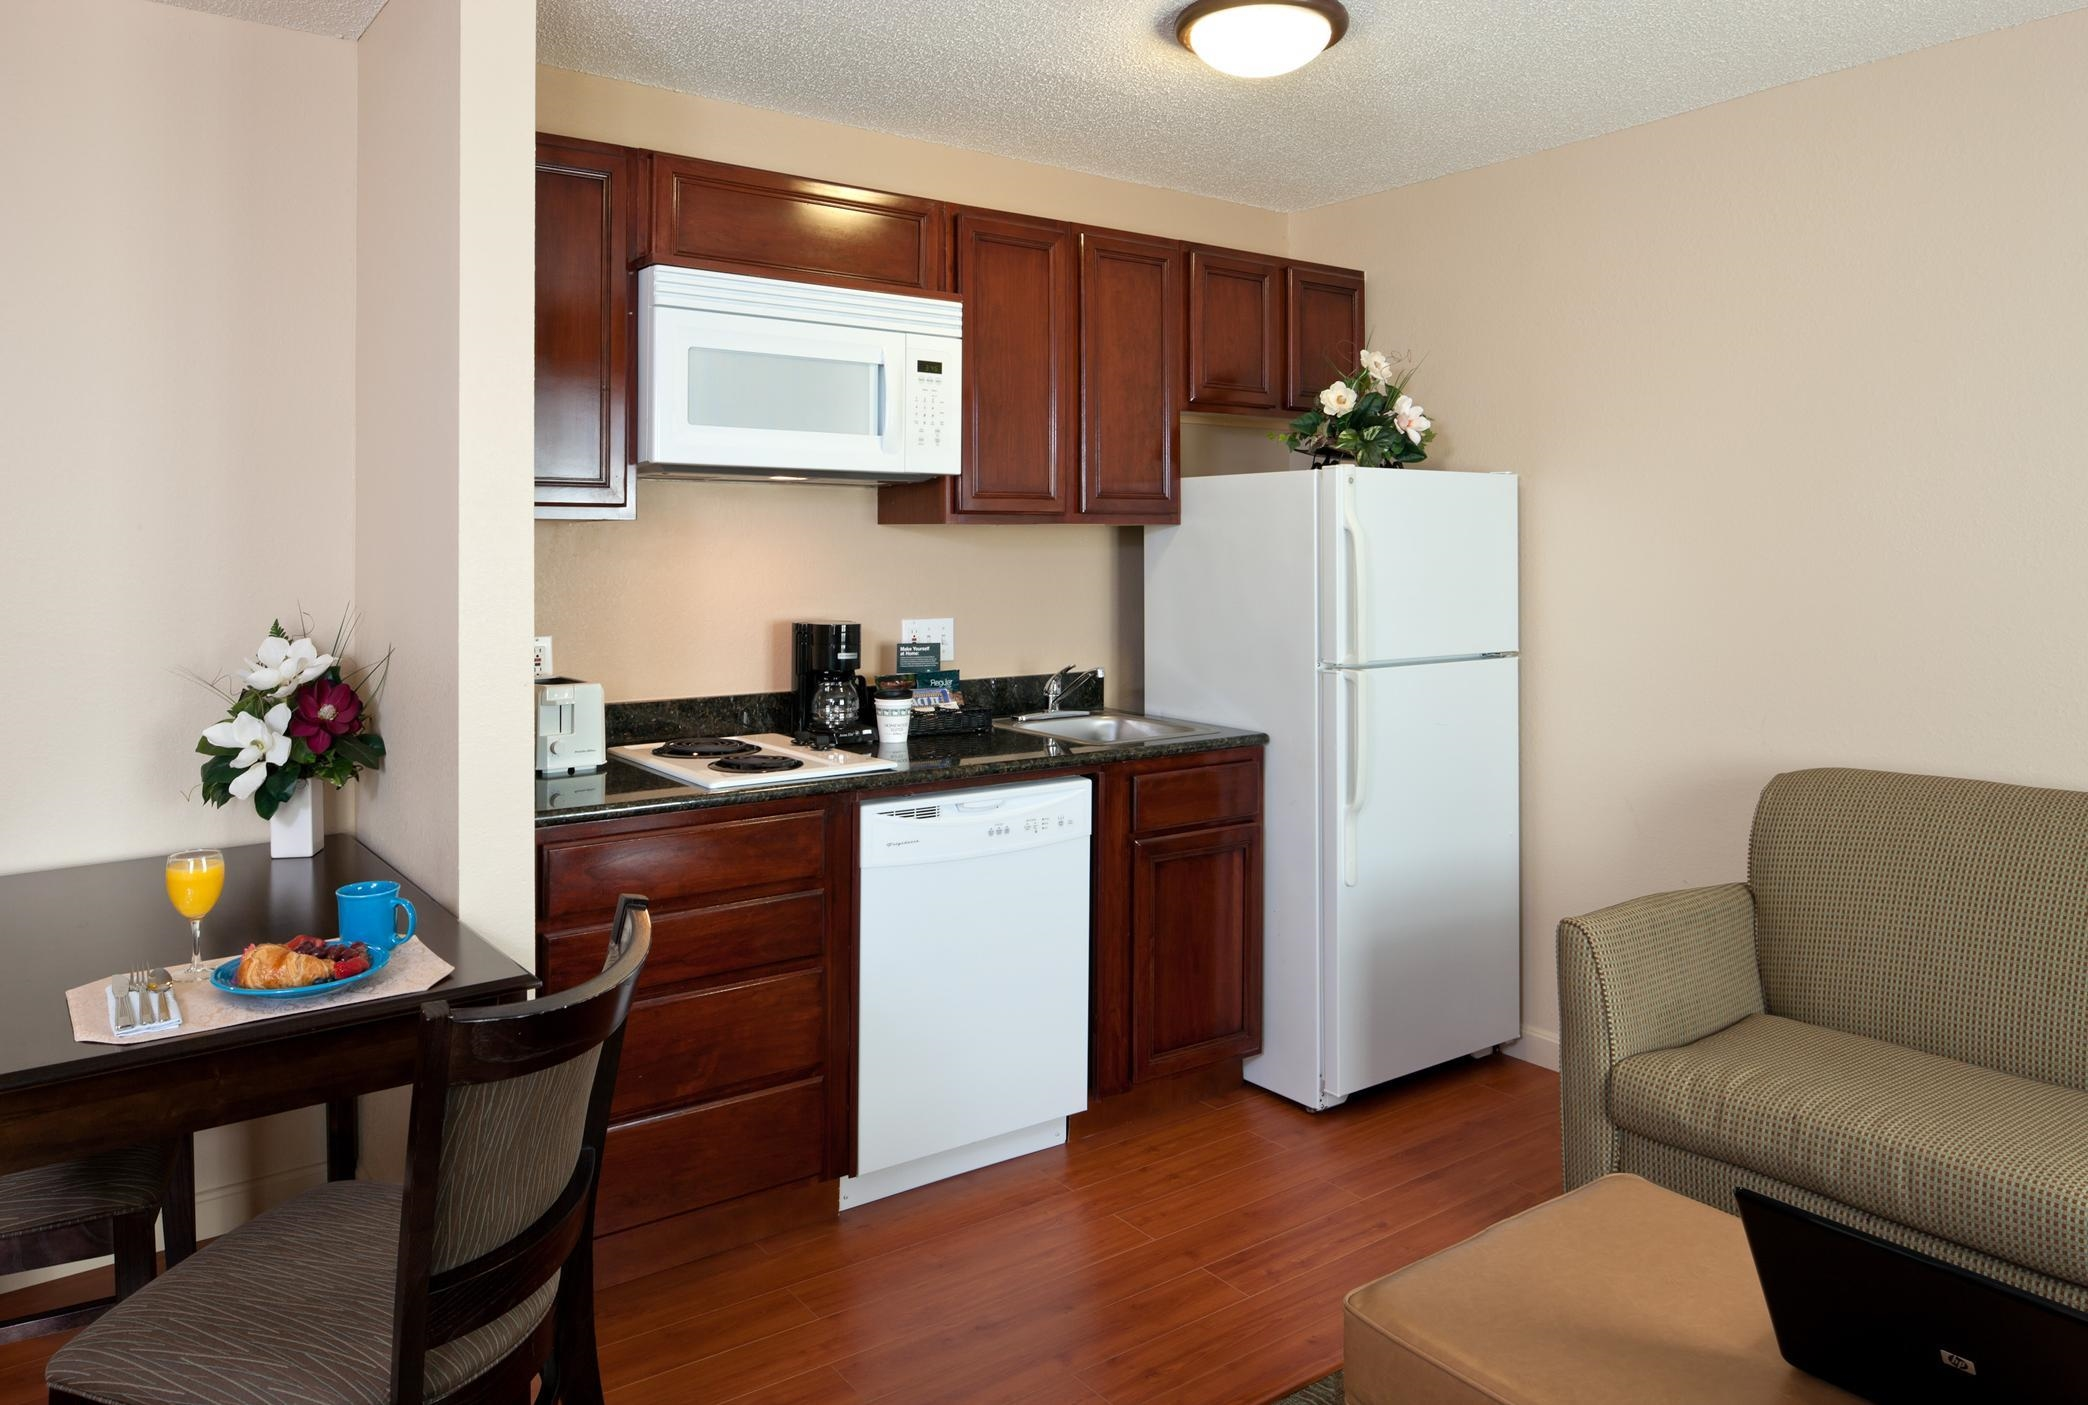 Homewood Suites by Hilton Boston / Andover image 13